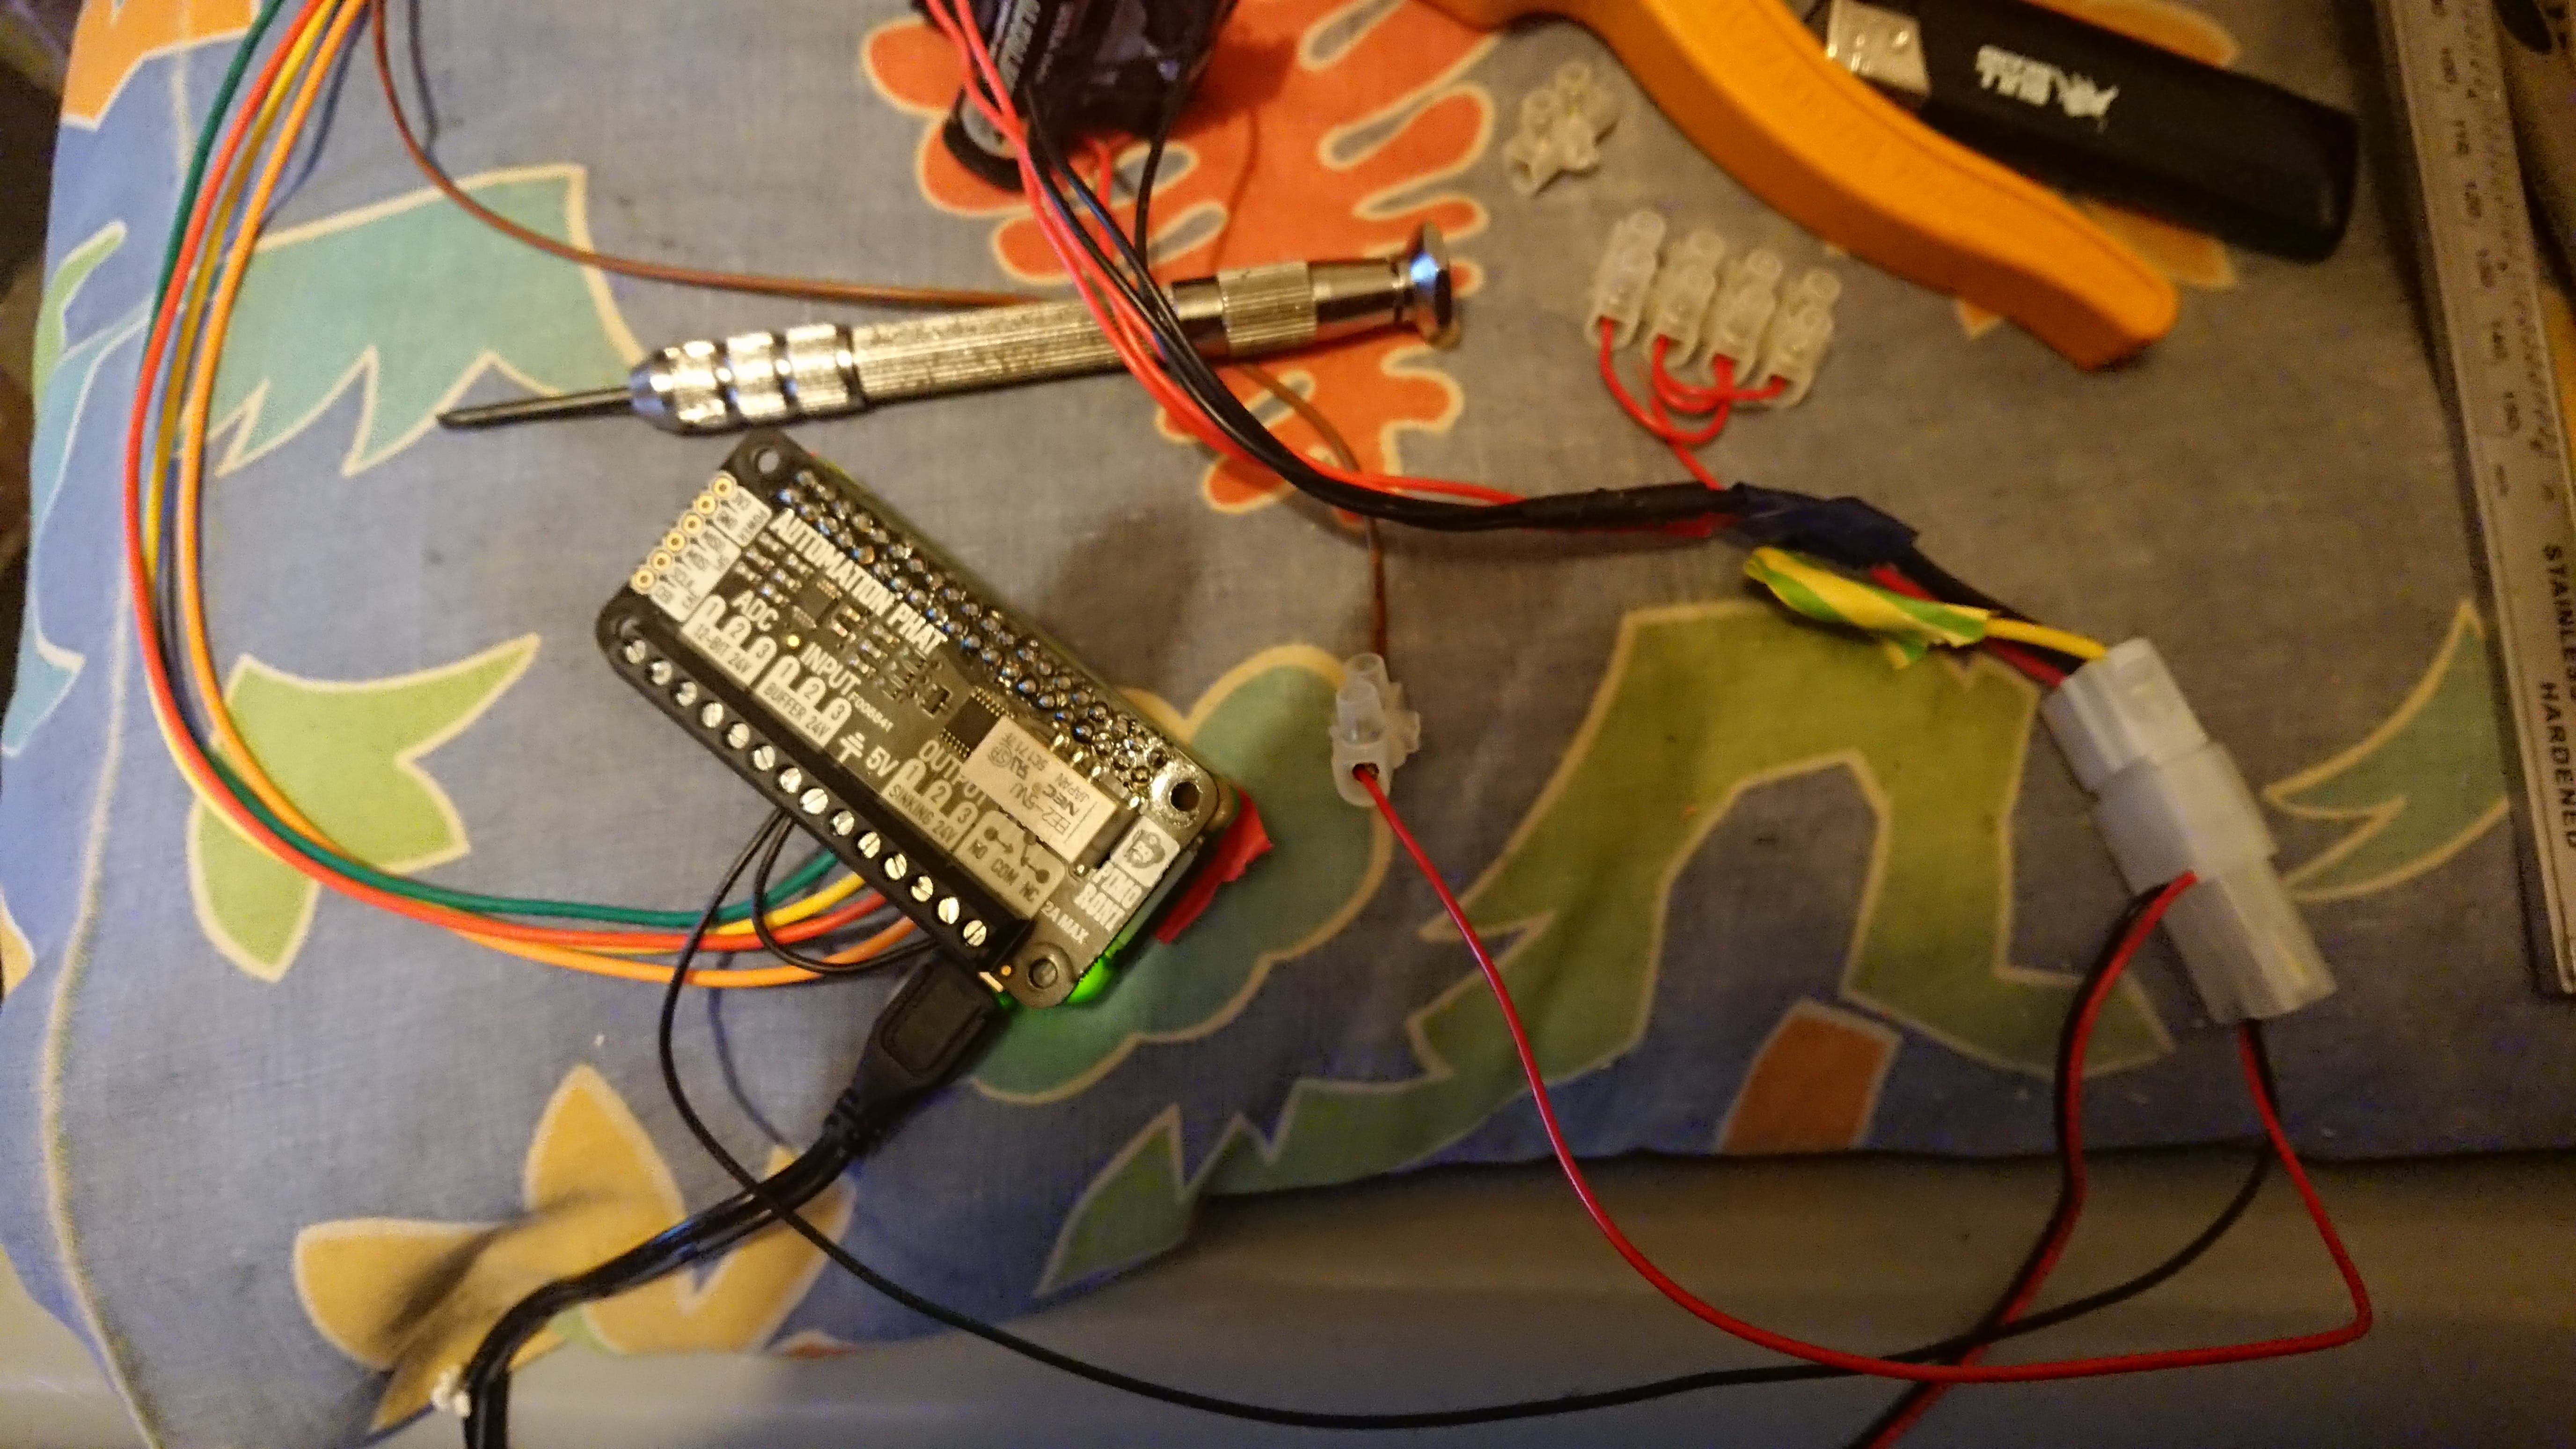 Batteries to IDE connector. Positive to Brown, negative to ground on pHAT and common on relay.